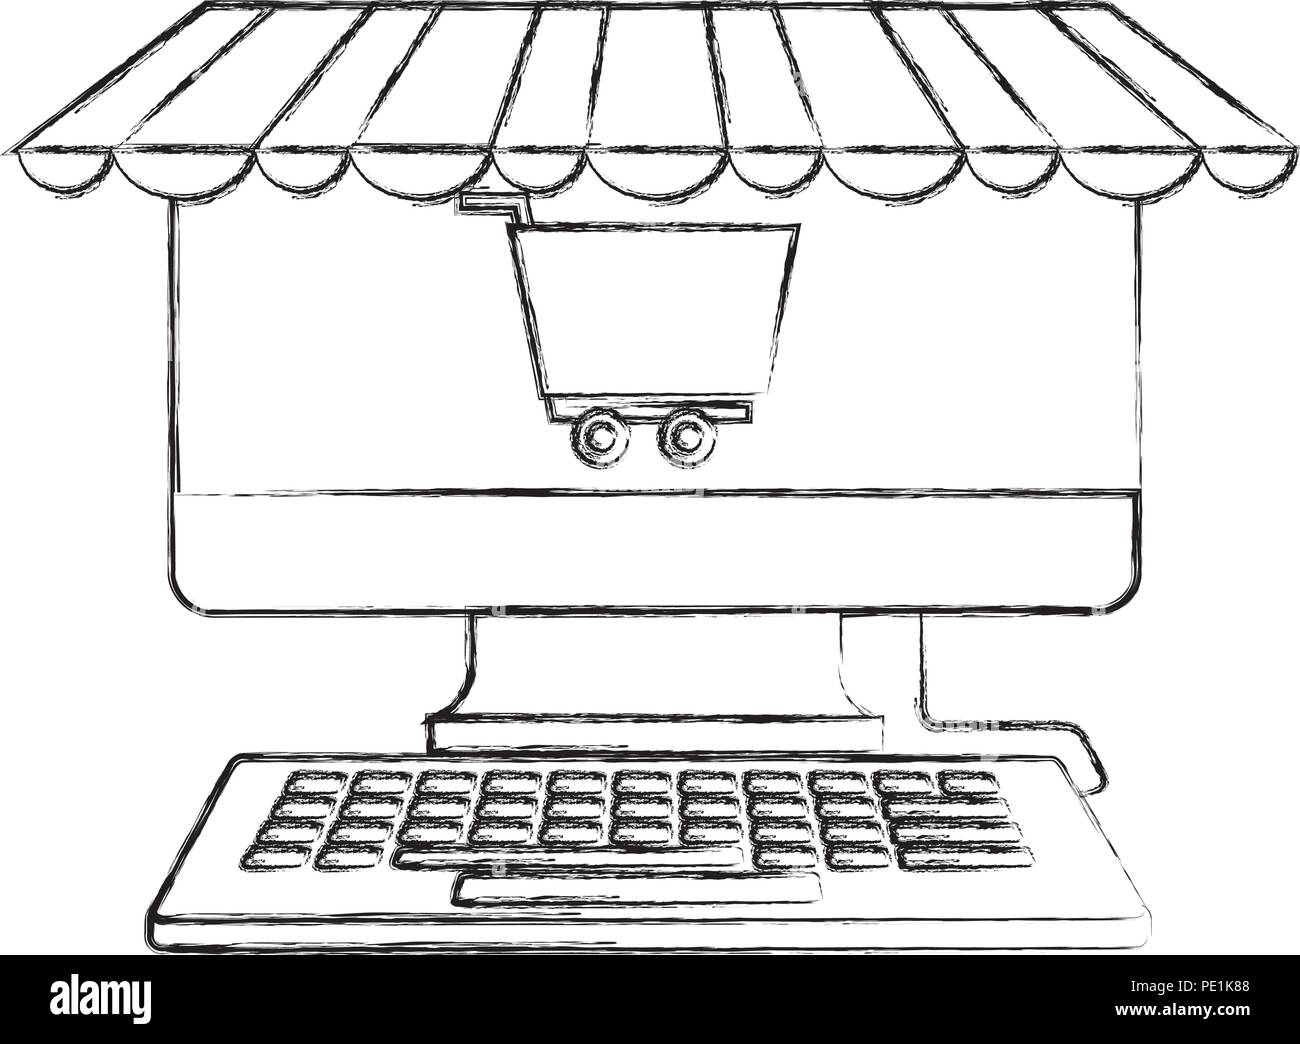 Computer Keyboard Shopping Cart Business Buy Online Vector Illustration Hand Drawing Stock Vector Image Art Alamy